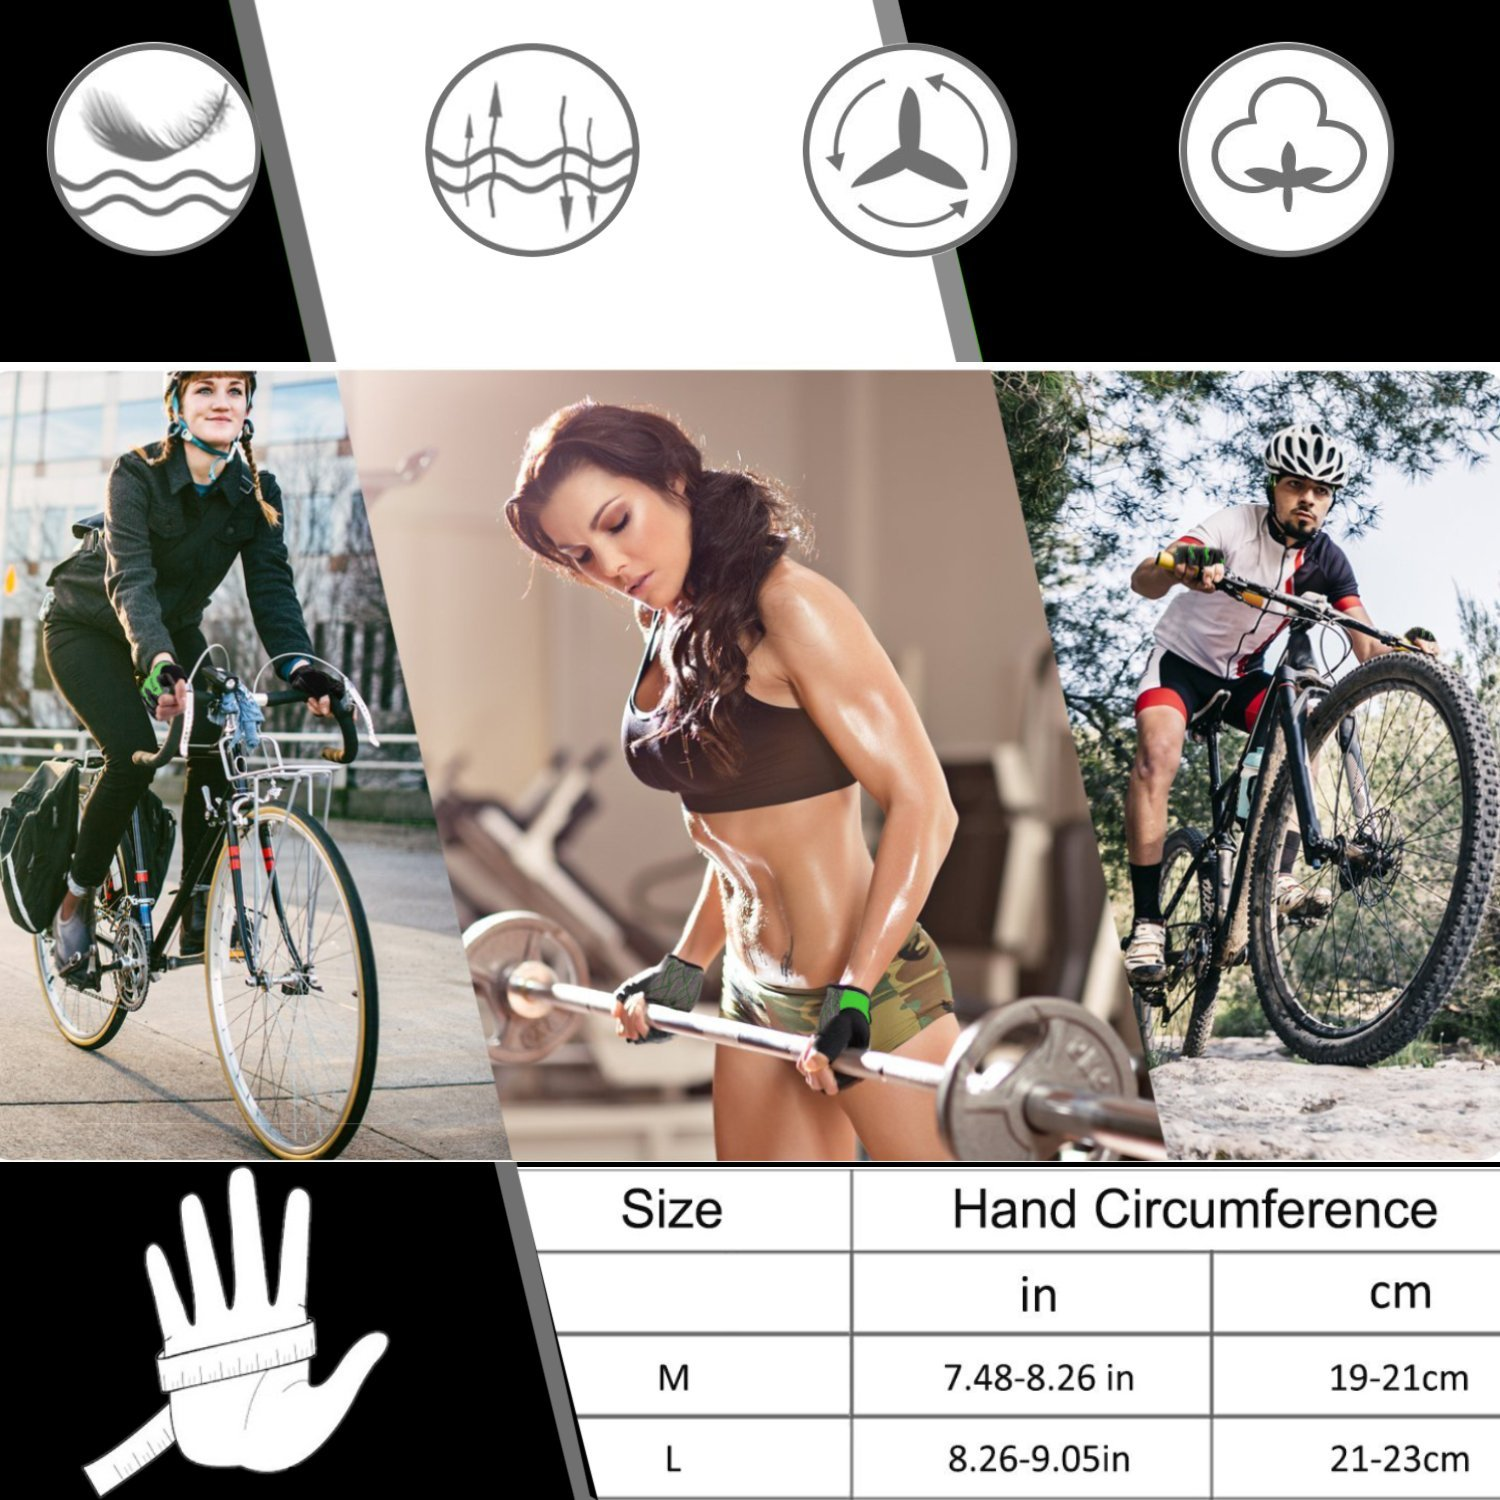 Bike Gloves Fingerless Cycling Gloves for Men DONWELL Anti-slip Breathable Gloves For Bicycle Riding Fitness Outdoor Sports Workout